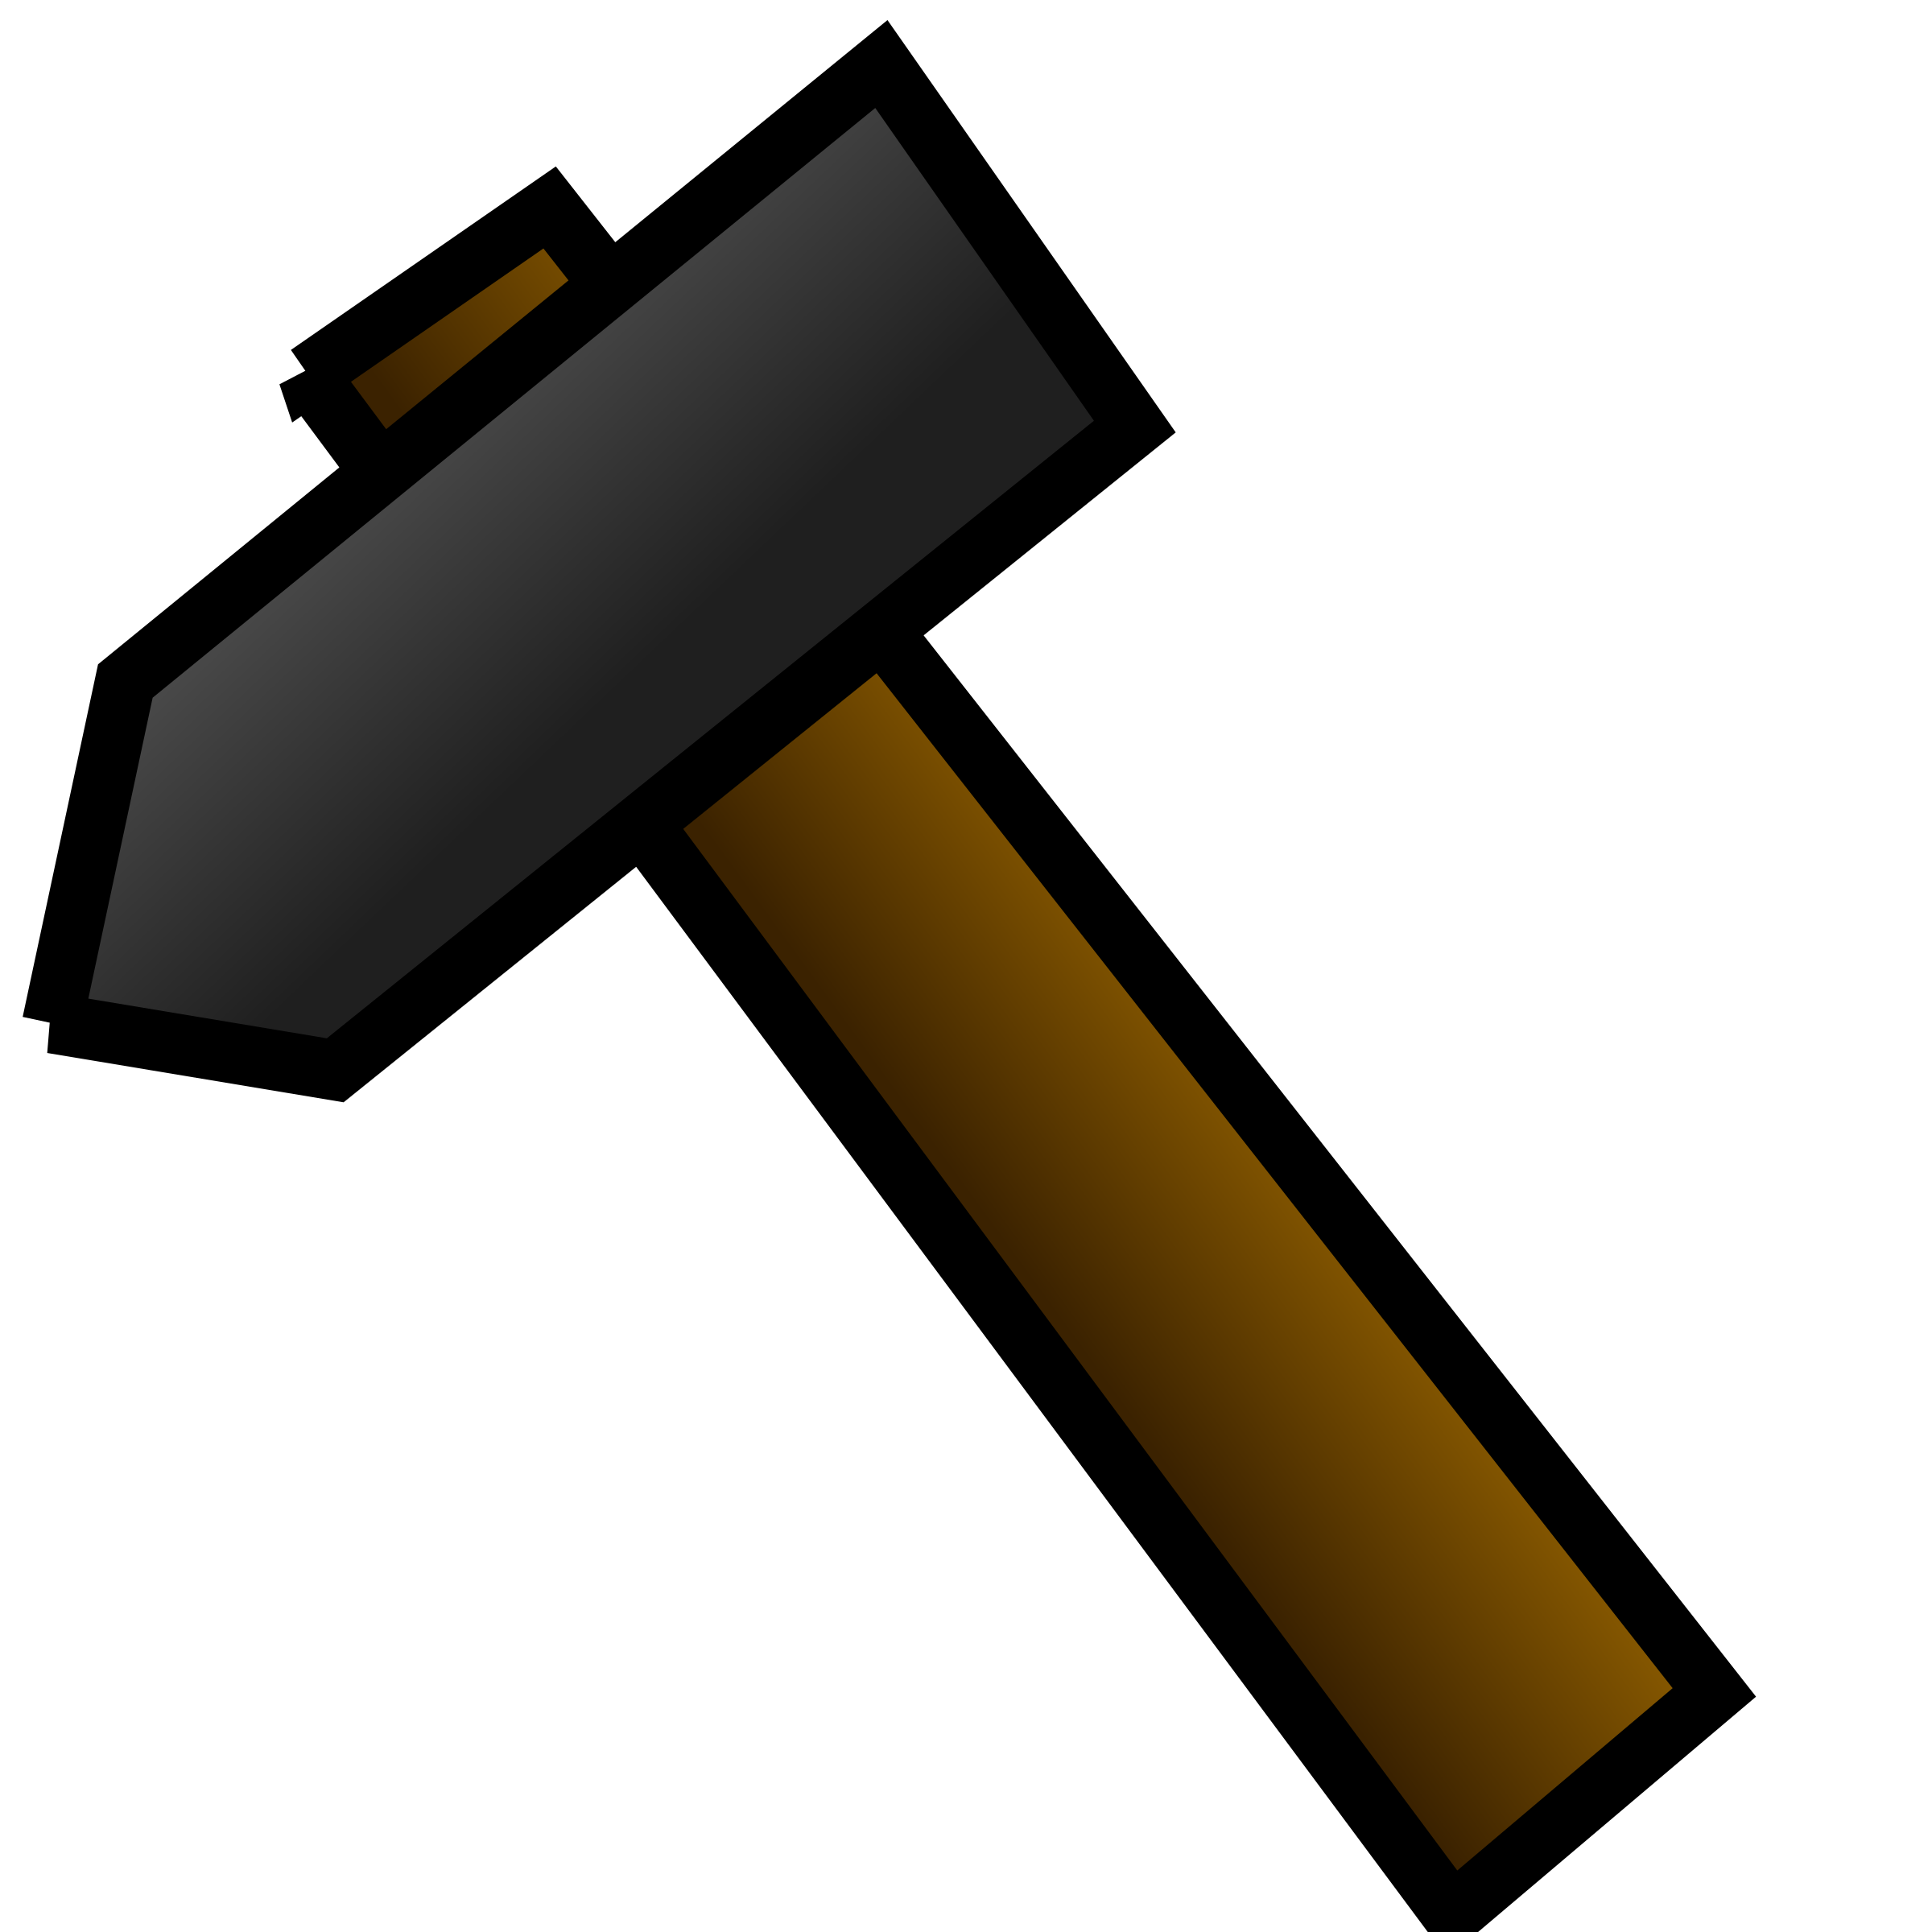 clipart hammer woodworking